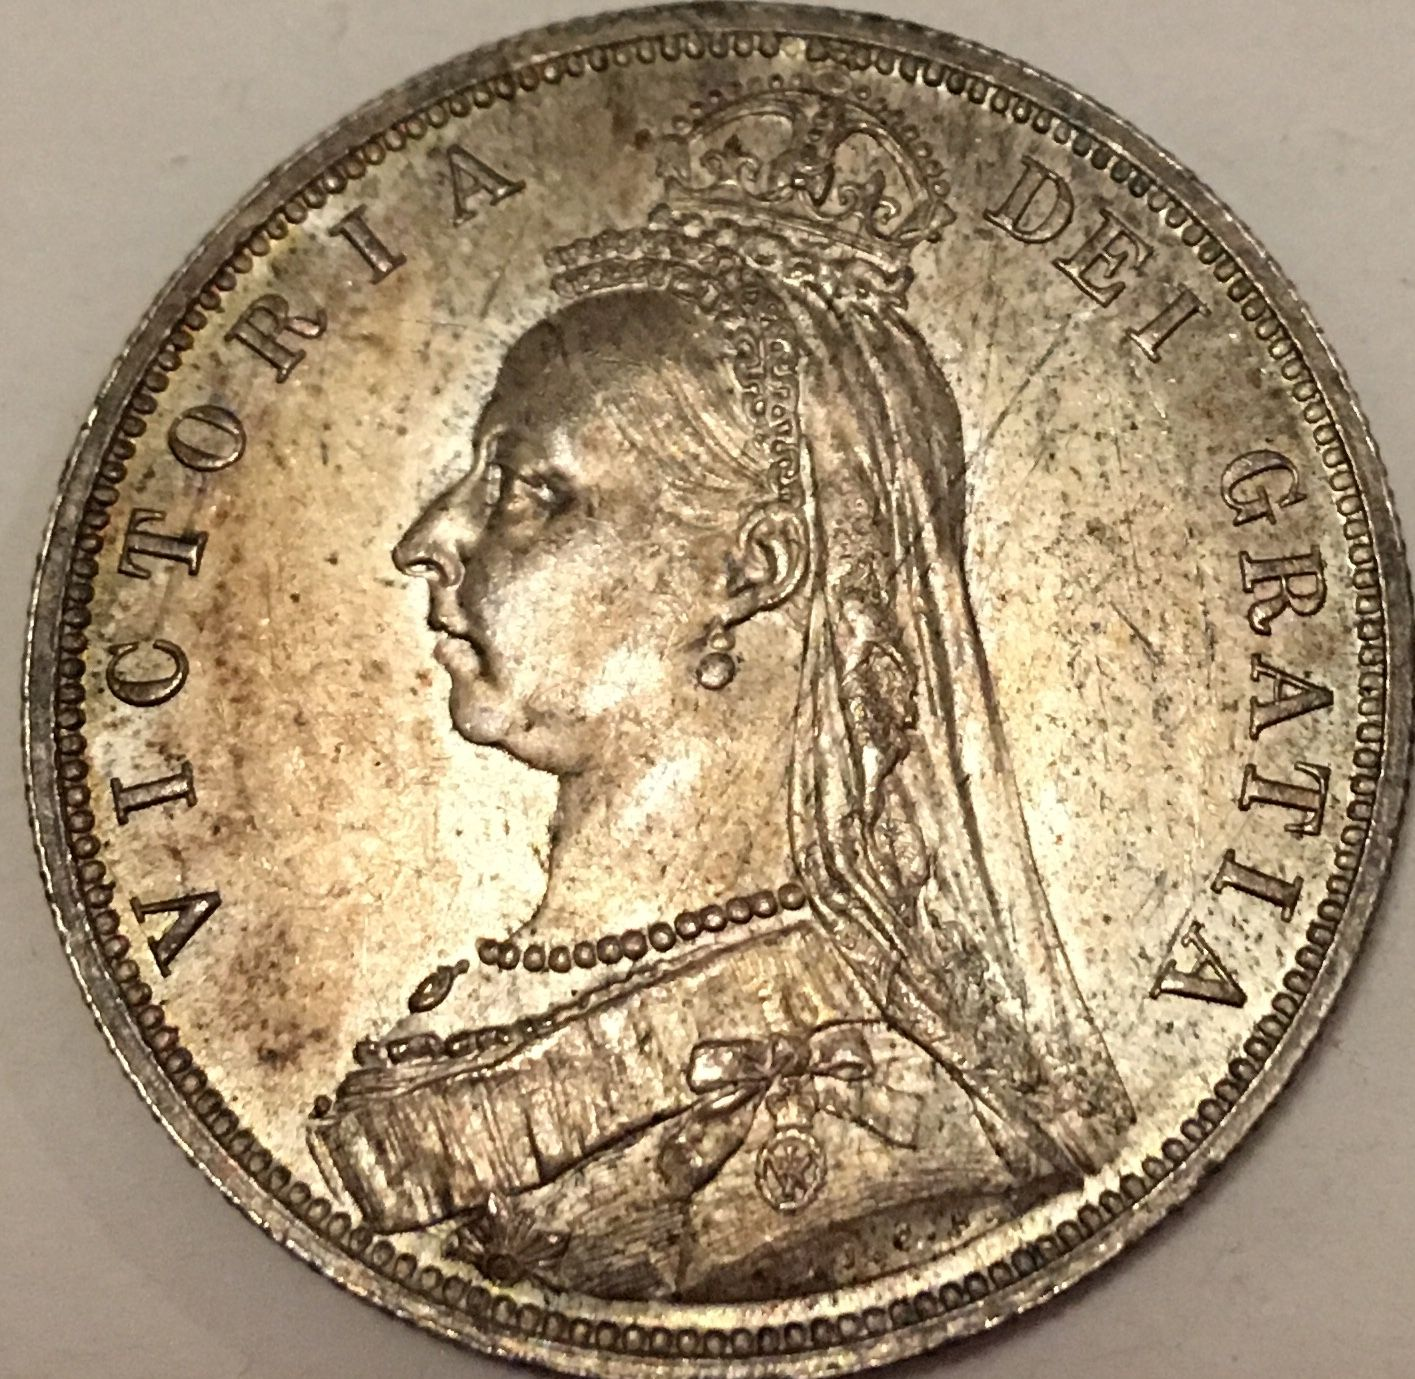 1887 half crown proof ? #3 - Newbie Coin Collecting Questions - NGC